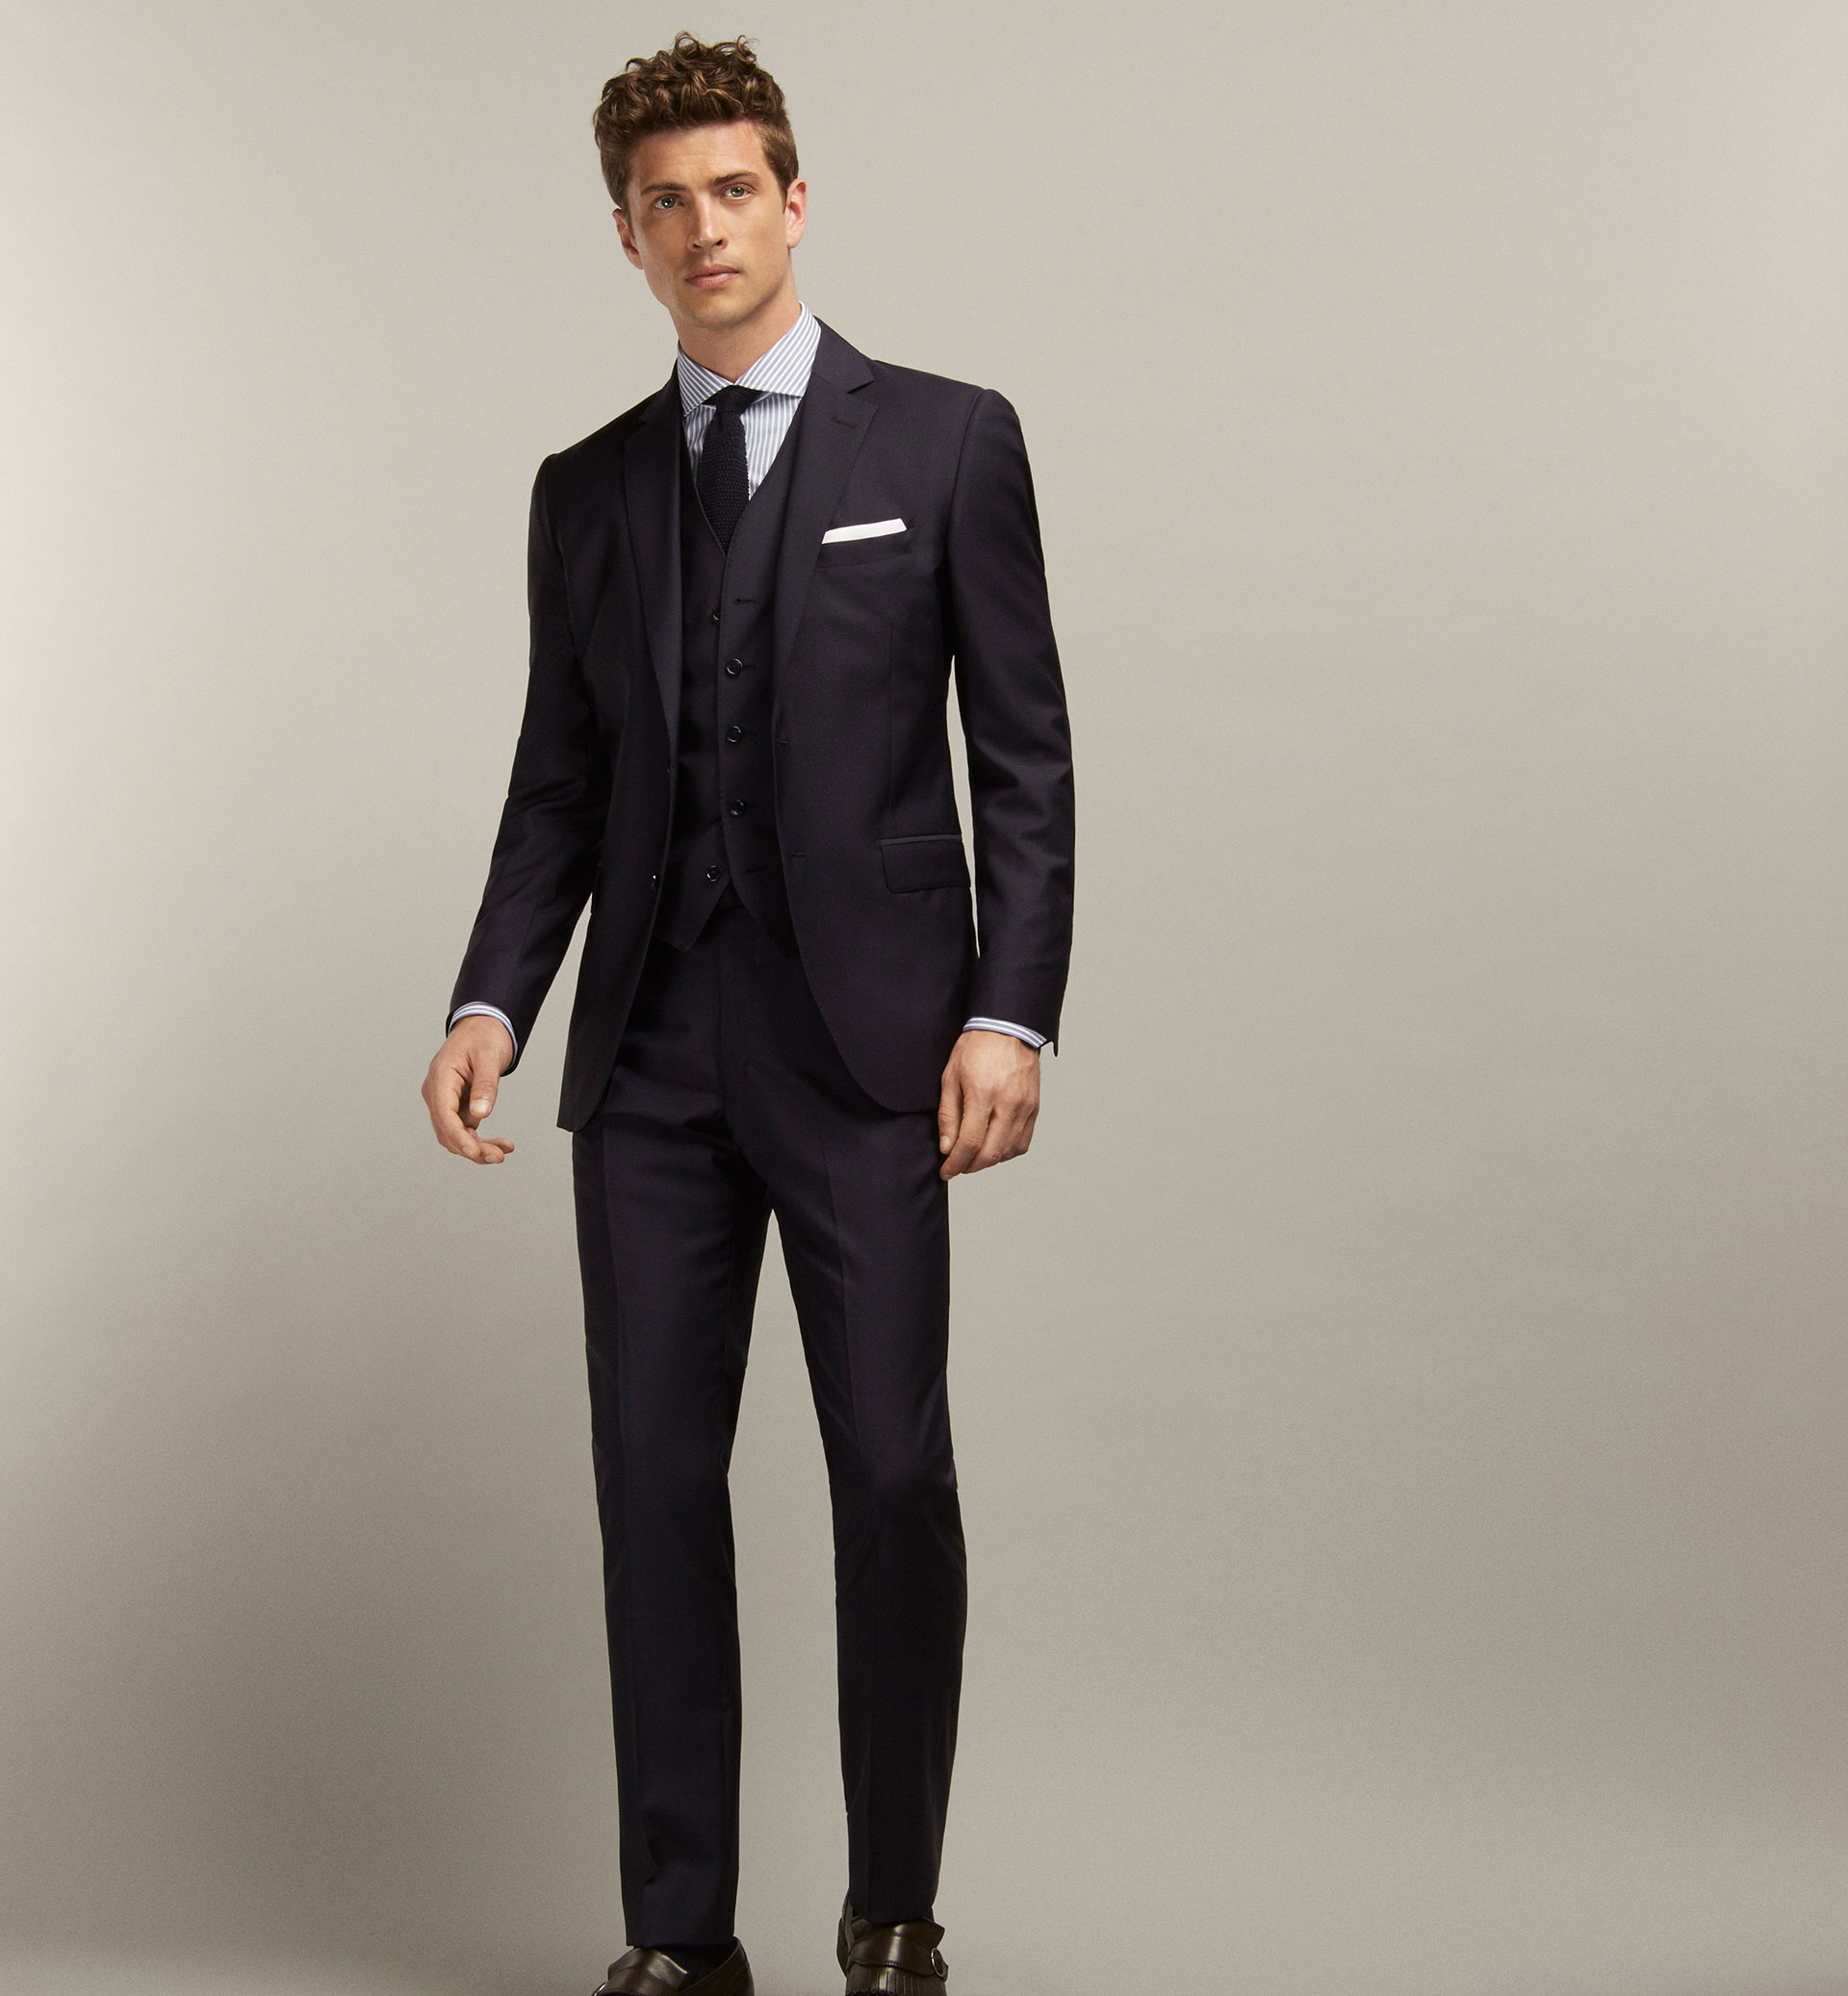 NAVY BLUE WOOL TROUSERS